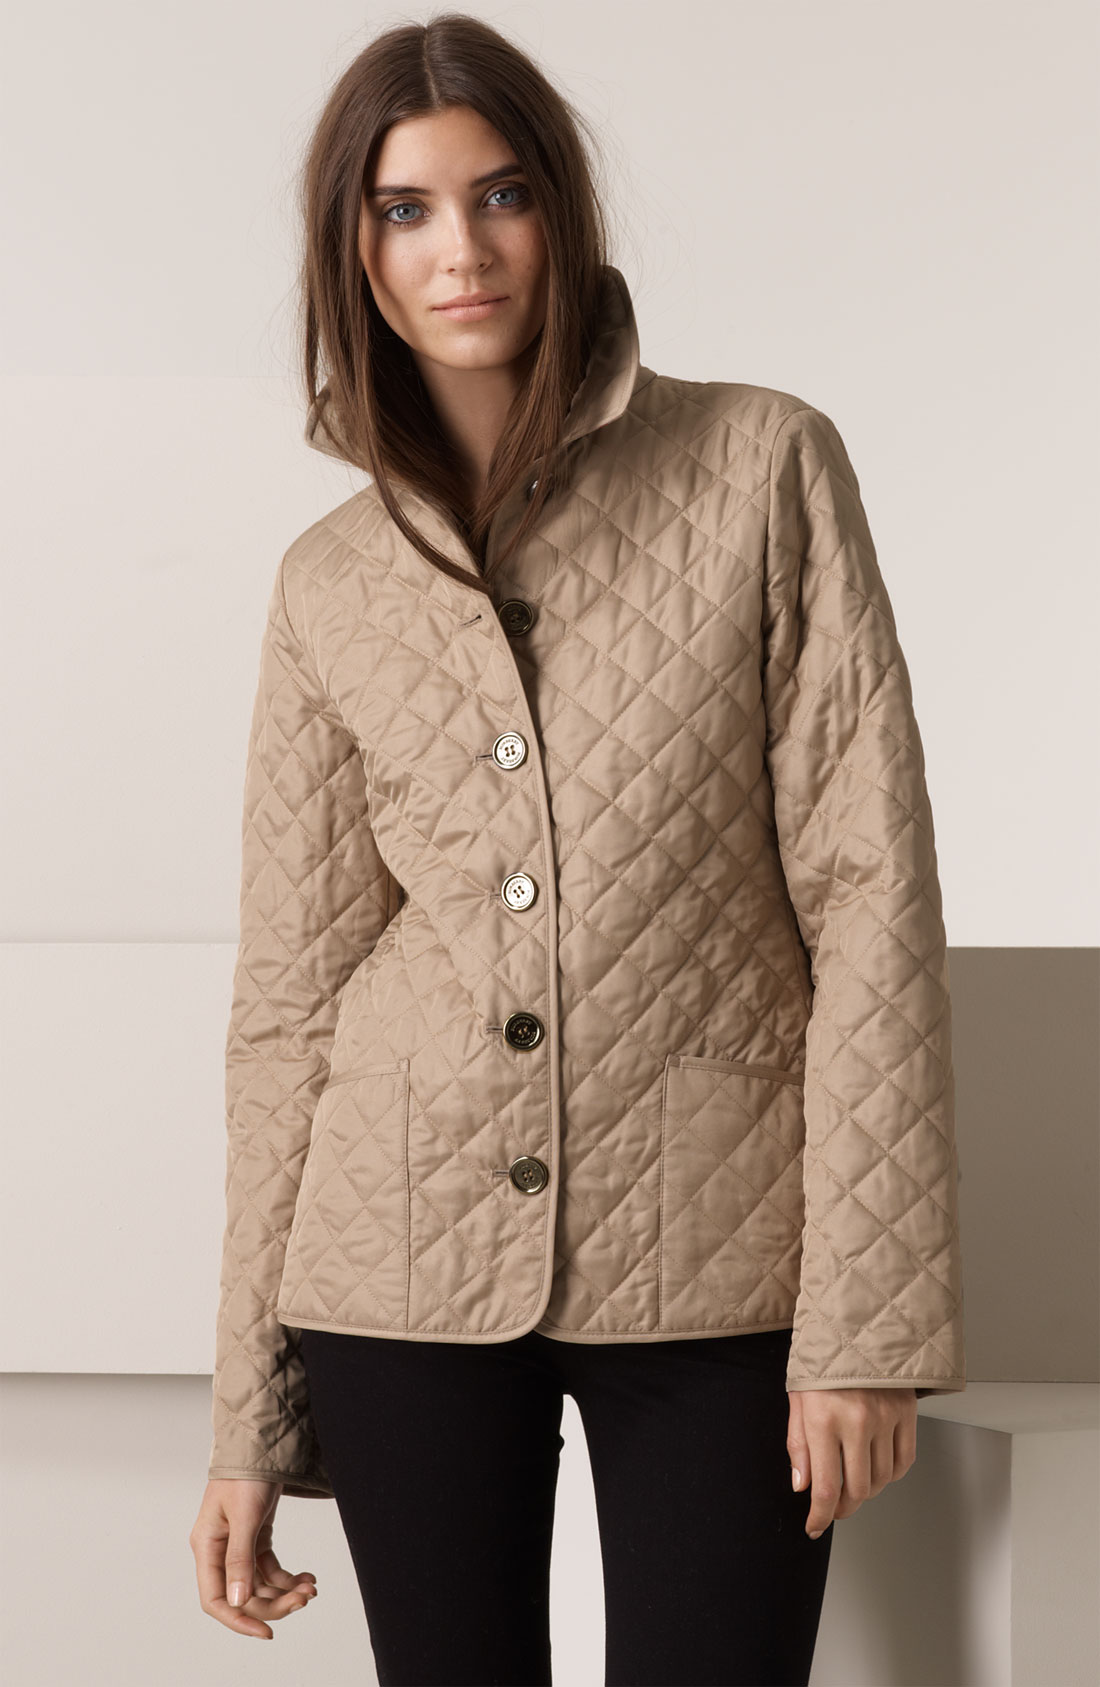 lyst burberry brit diamond quilted jacket in natural. Black Bedroom Furniture Sets. Home Design Ideas